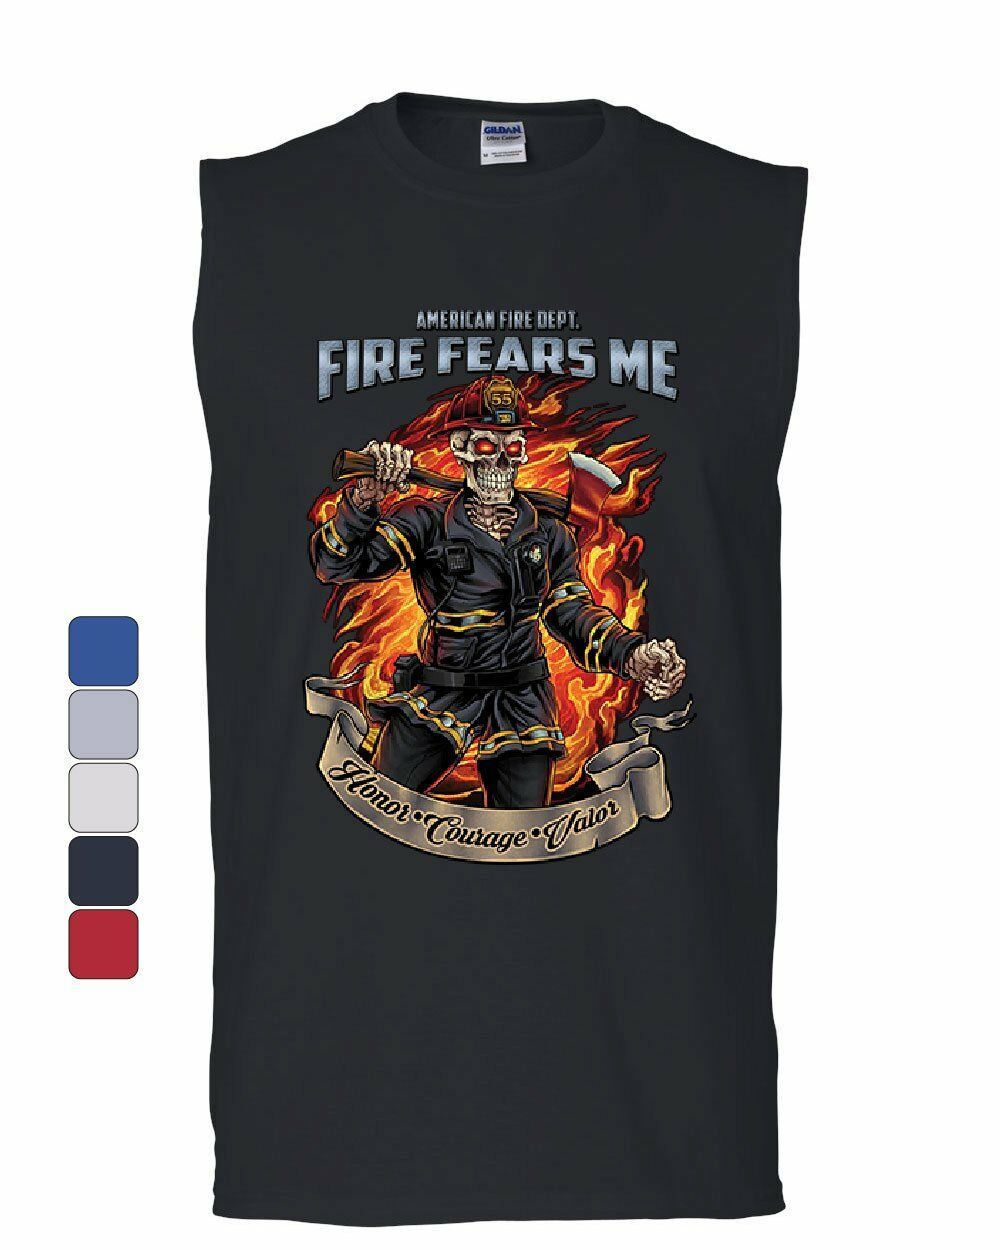 Fire Fears Me Muscle Shirt Firefighter Fire Dept. Honor Courage Valor Sleeveless - $11.48 - $24.99